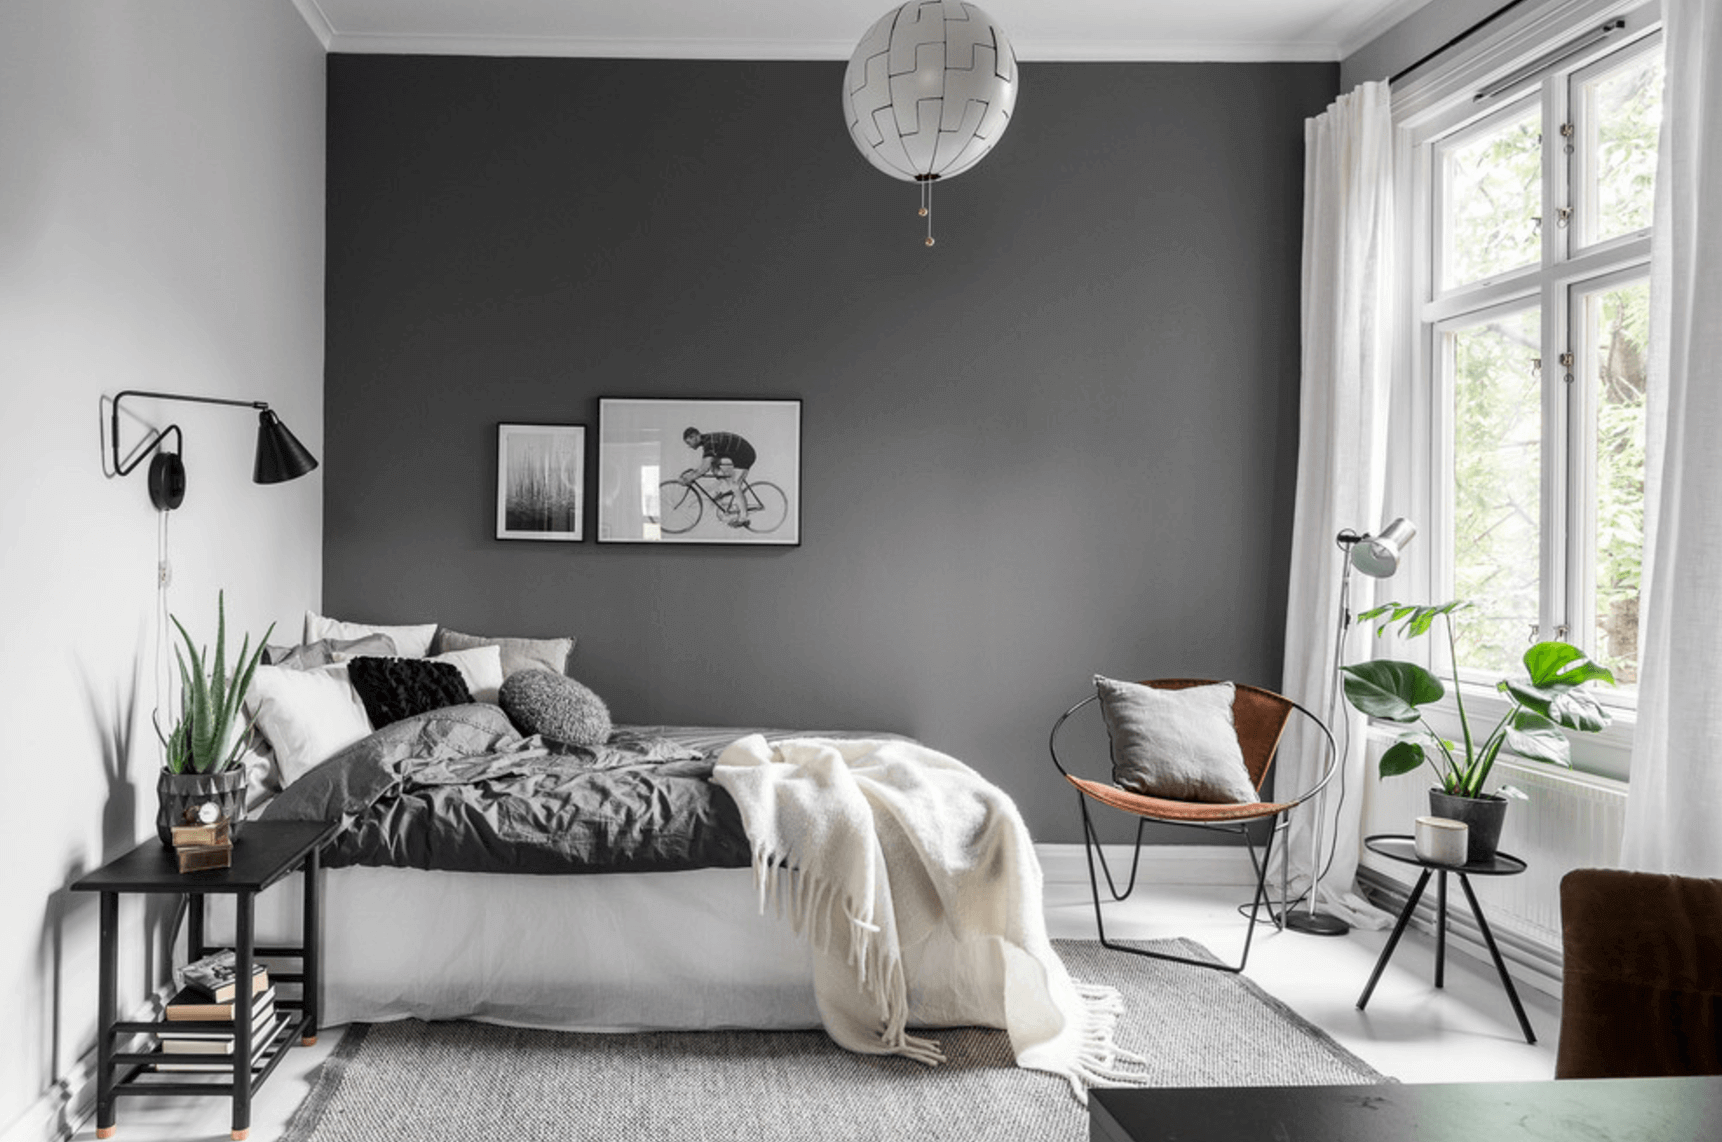 Charmant Minimalist Décor Is The Perfect Statement In This Grey Bedroom Ideas